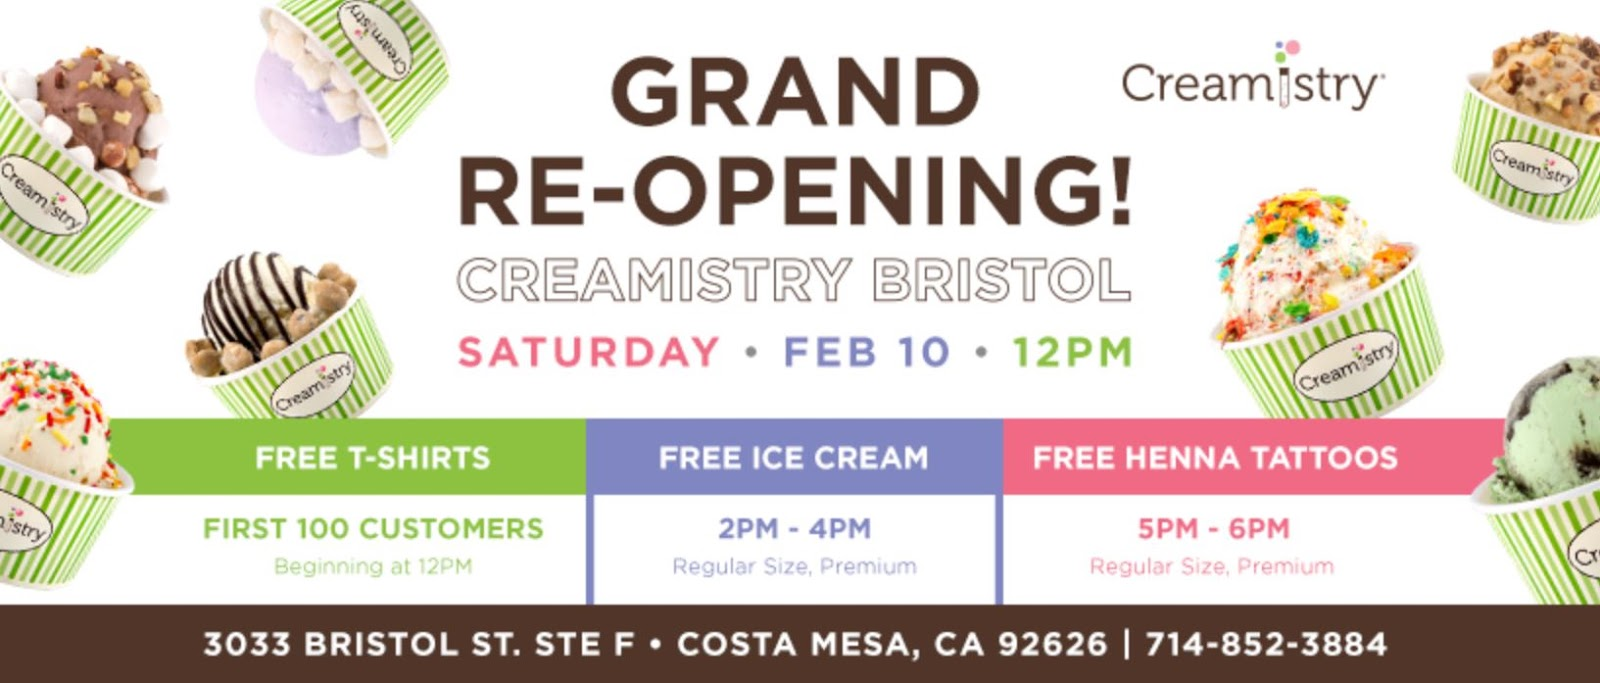 Feb 10 | Creamistry Grand Re-Opens in Costa Mesa - Offers Free Ice Cream